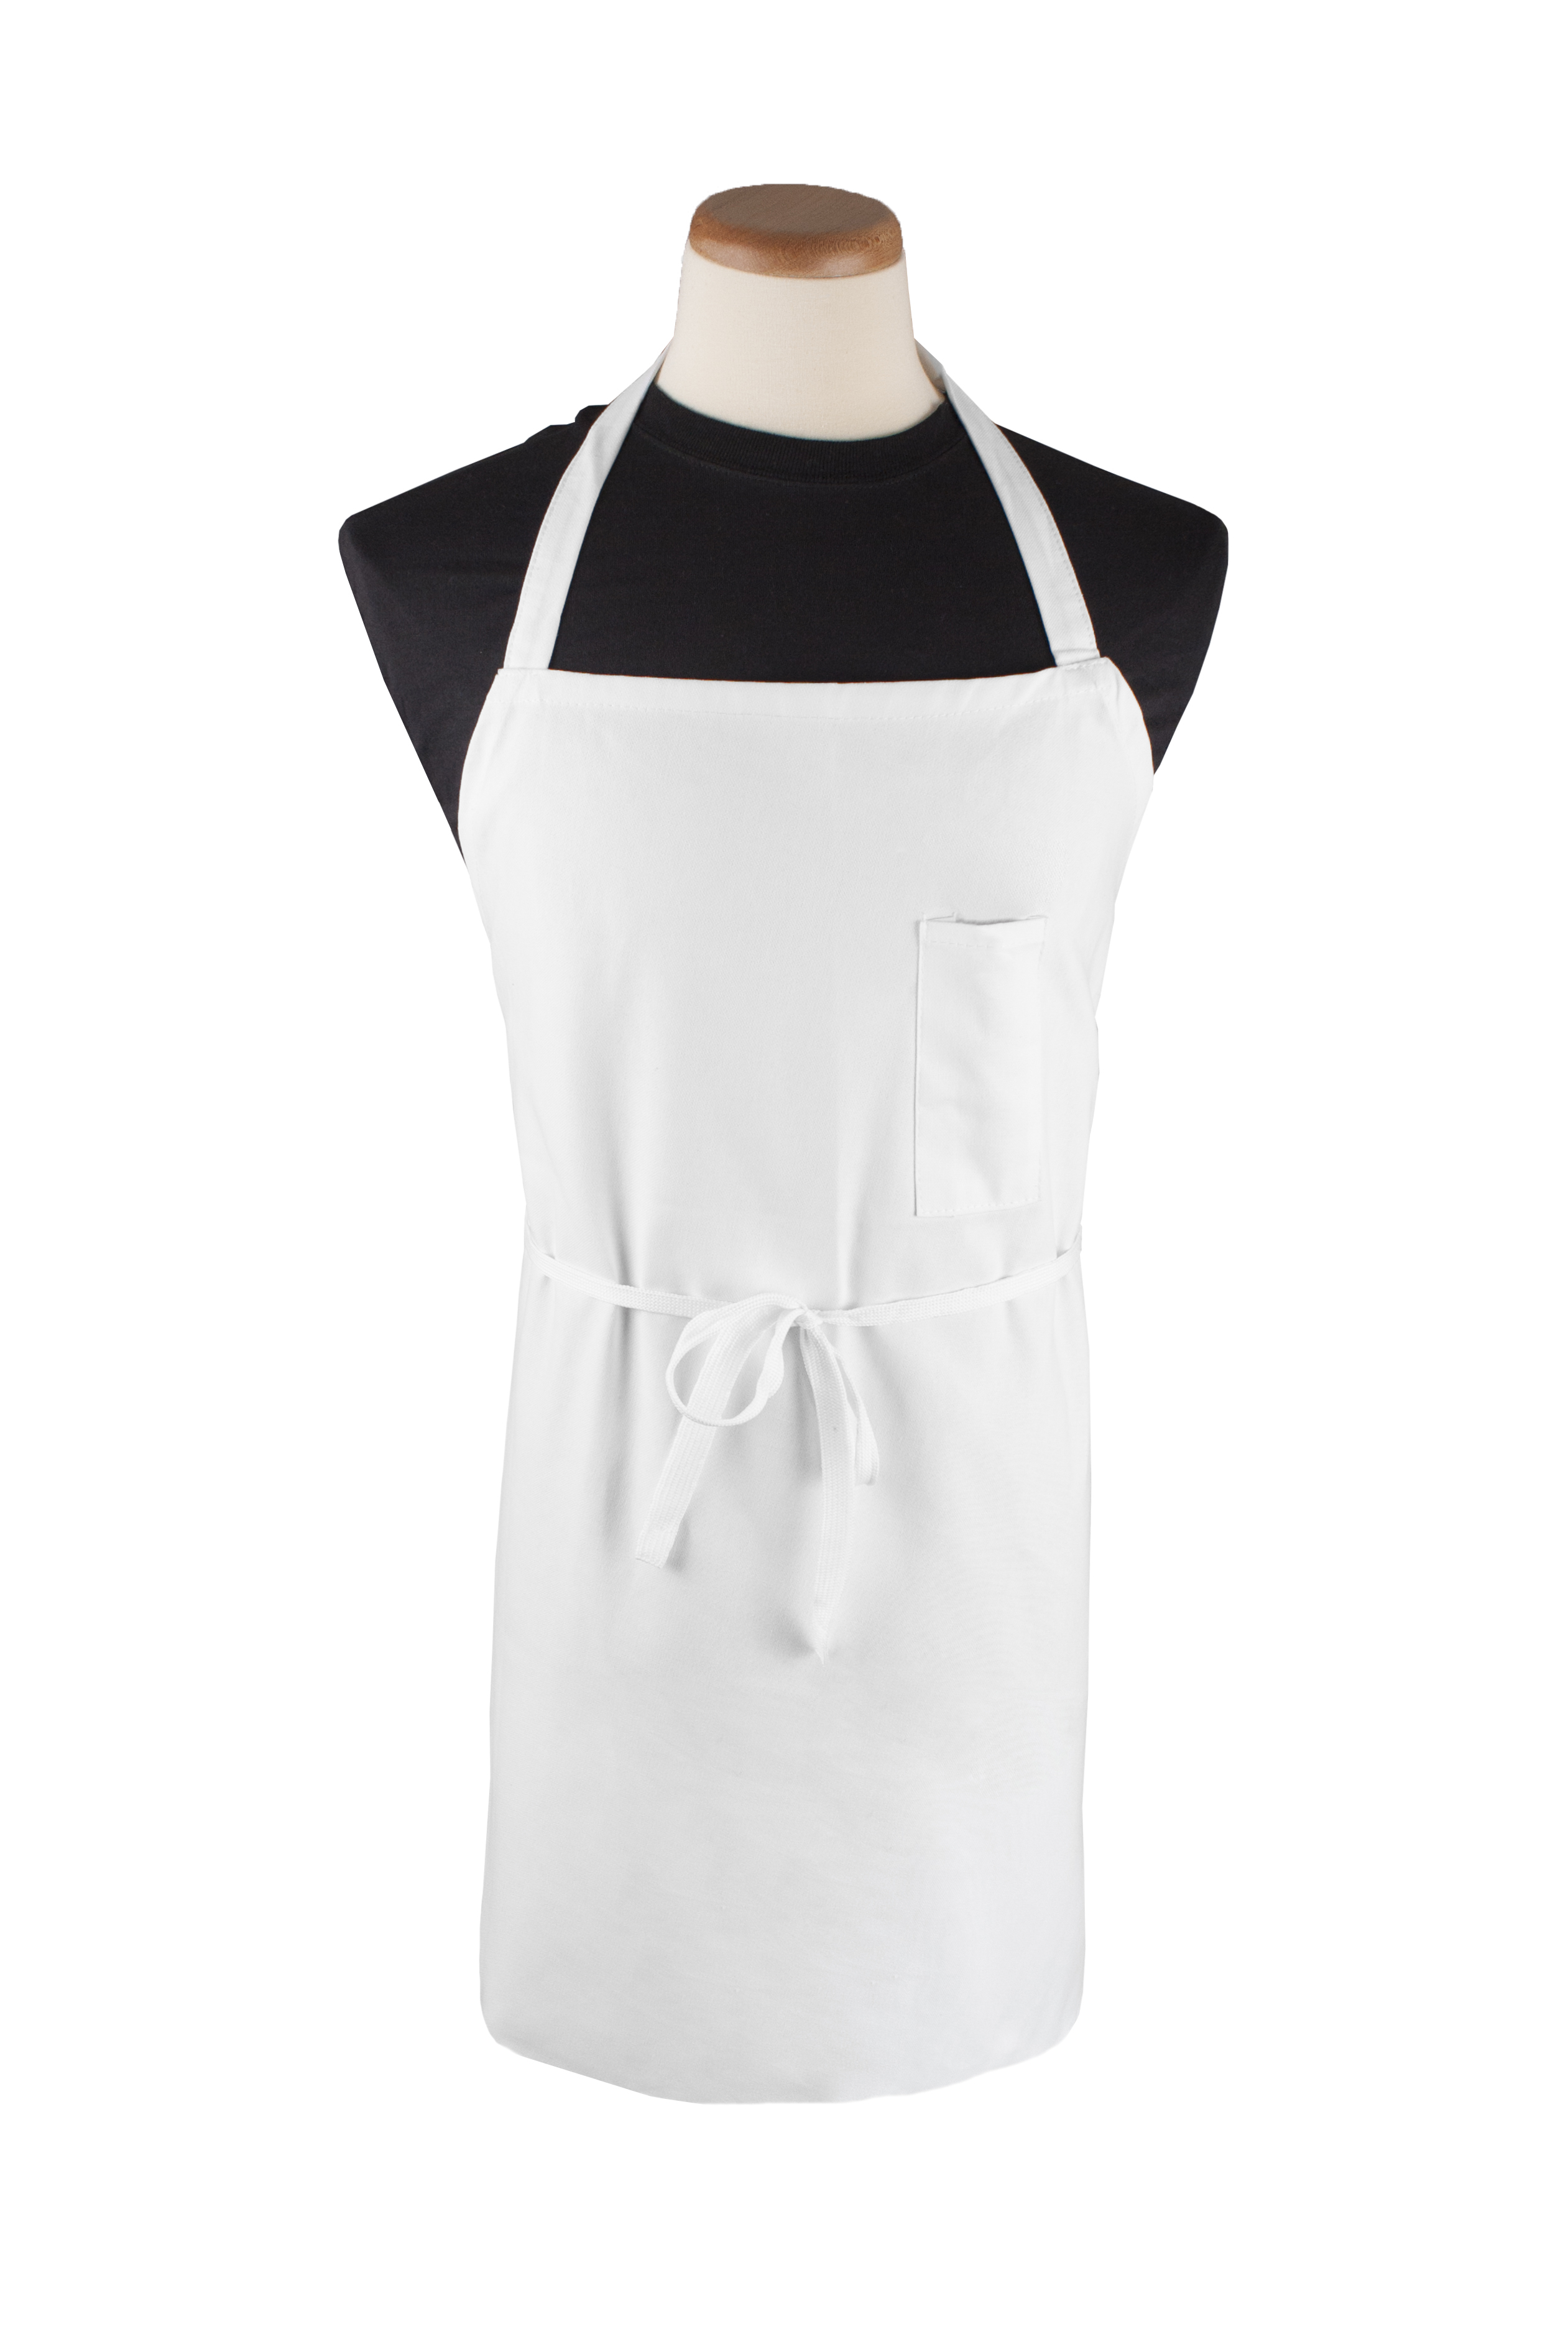 Bib Apron w/Pen Pocket, 32